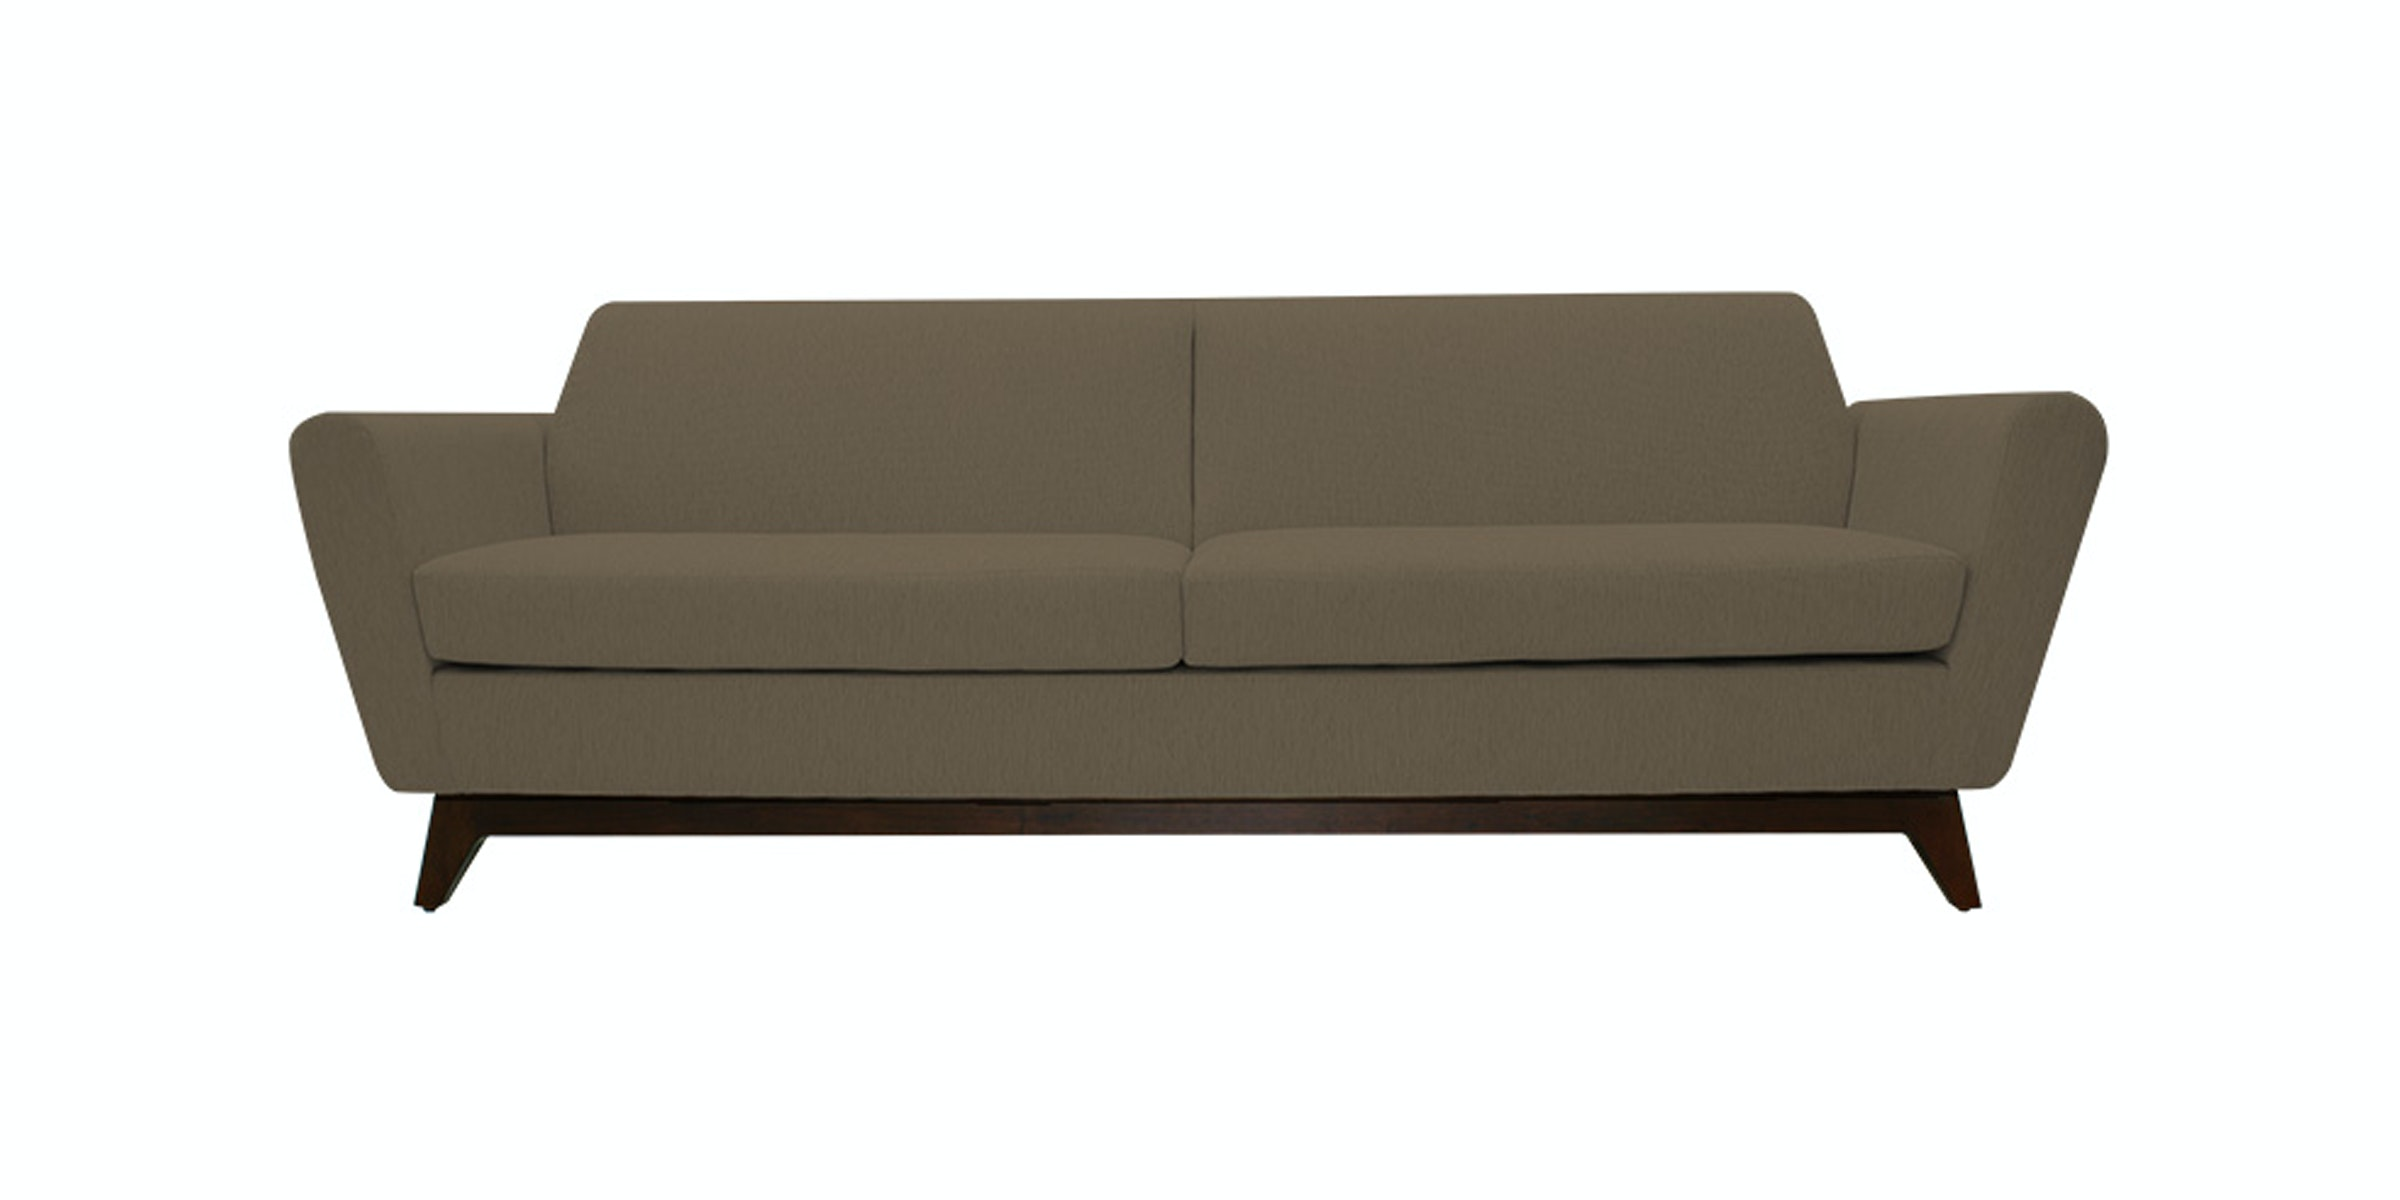 Nestudio Frankie Forte Three Seater Sofa Tuscan Tan